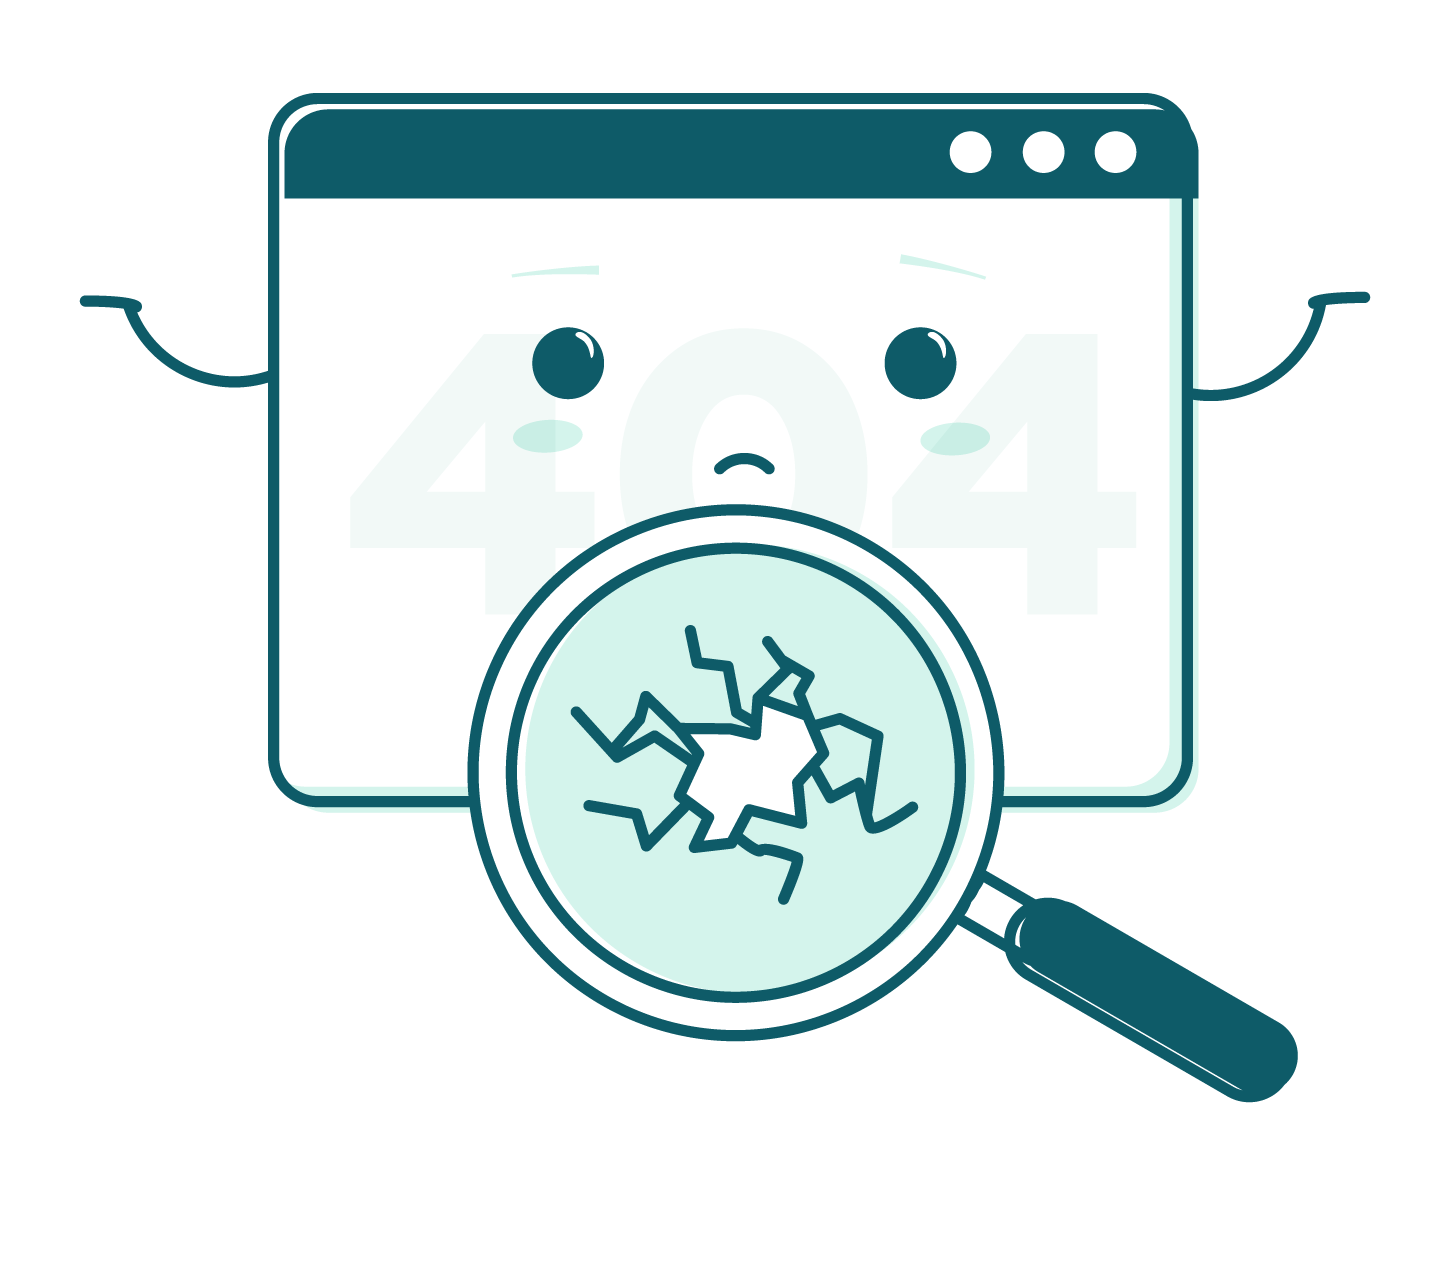 Page-not-found-concept,-404-error-web-page-with-cute-cartoon-face.-Flat-line-illustration-concept-for-web-884072610_4500x4500-[Converted].png